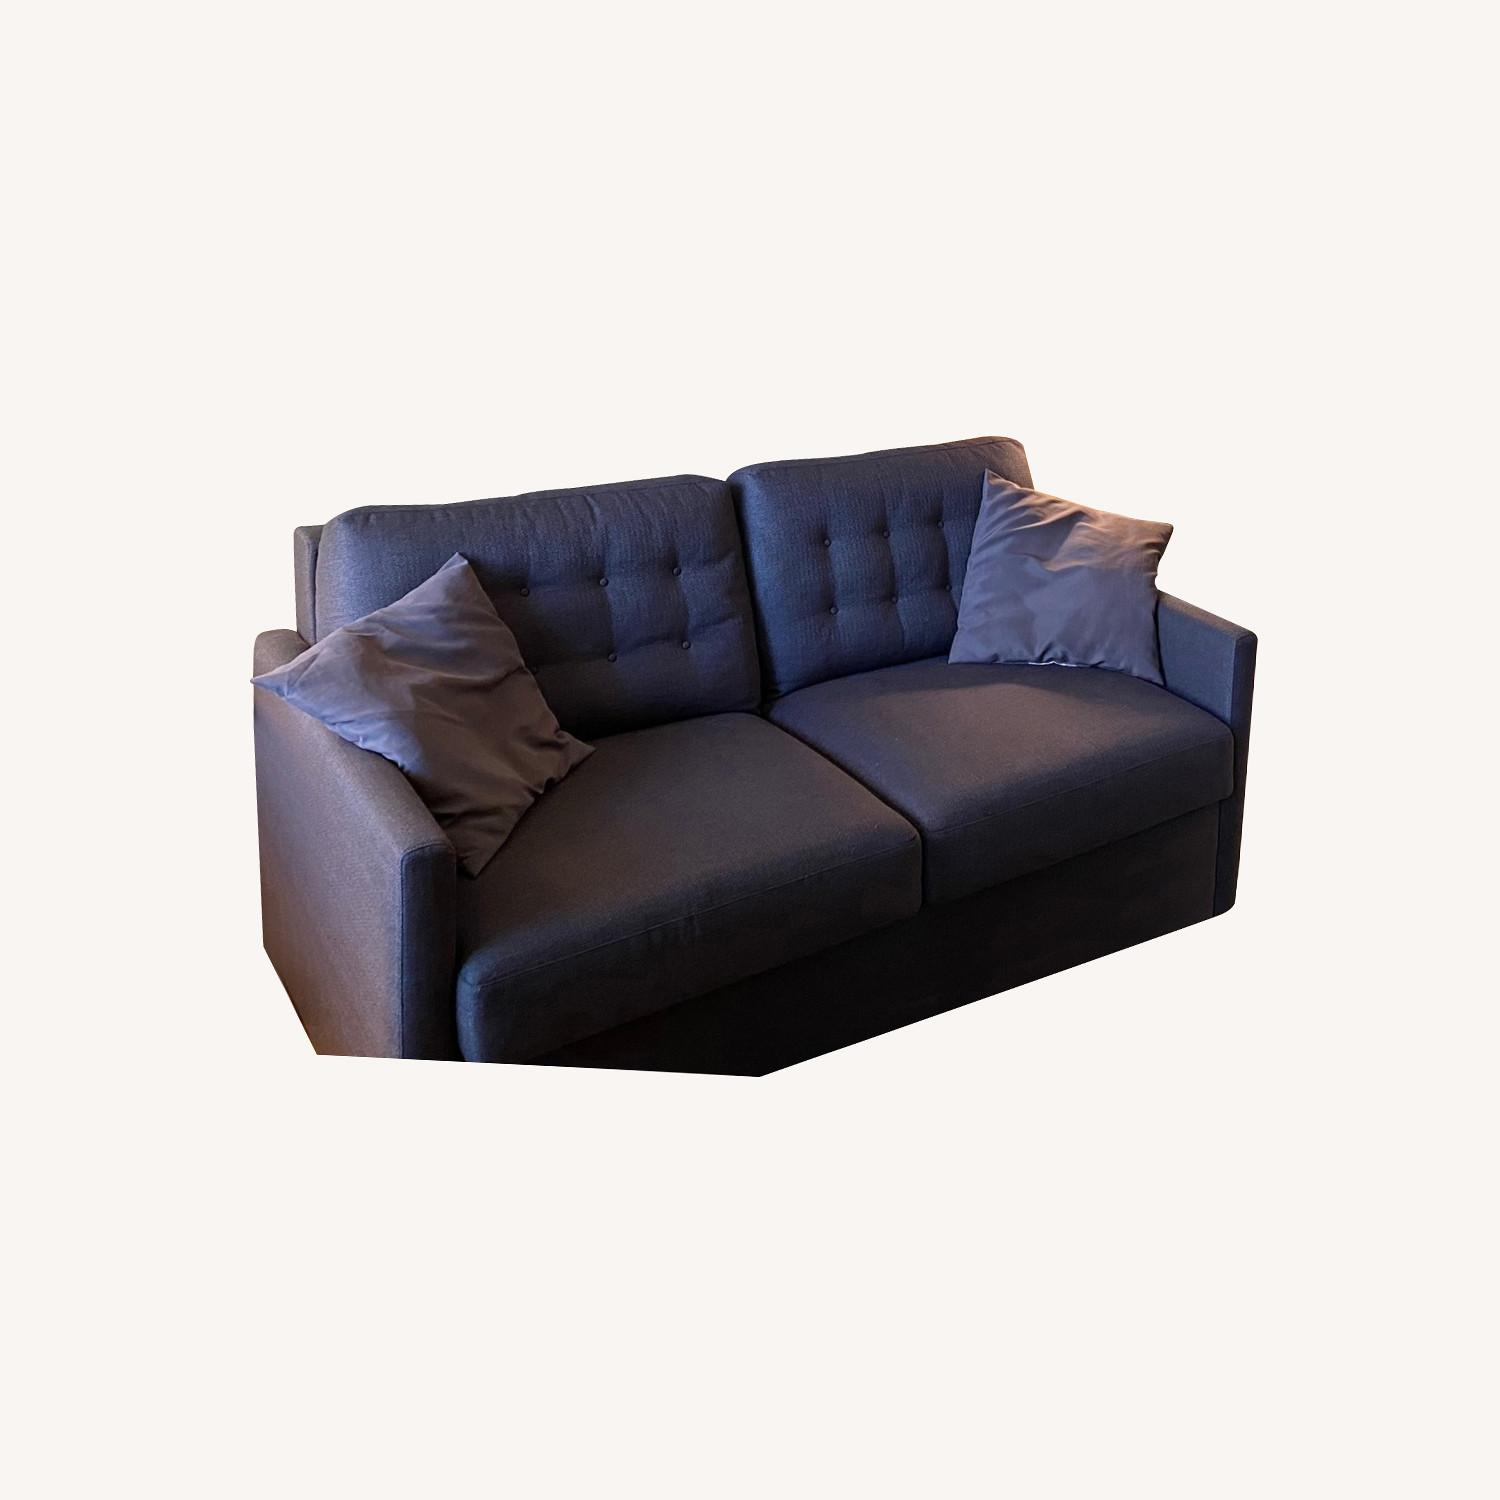 American Leather Queen Size Sleeper-Sofa - image-0